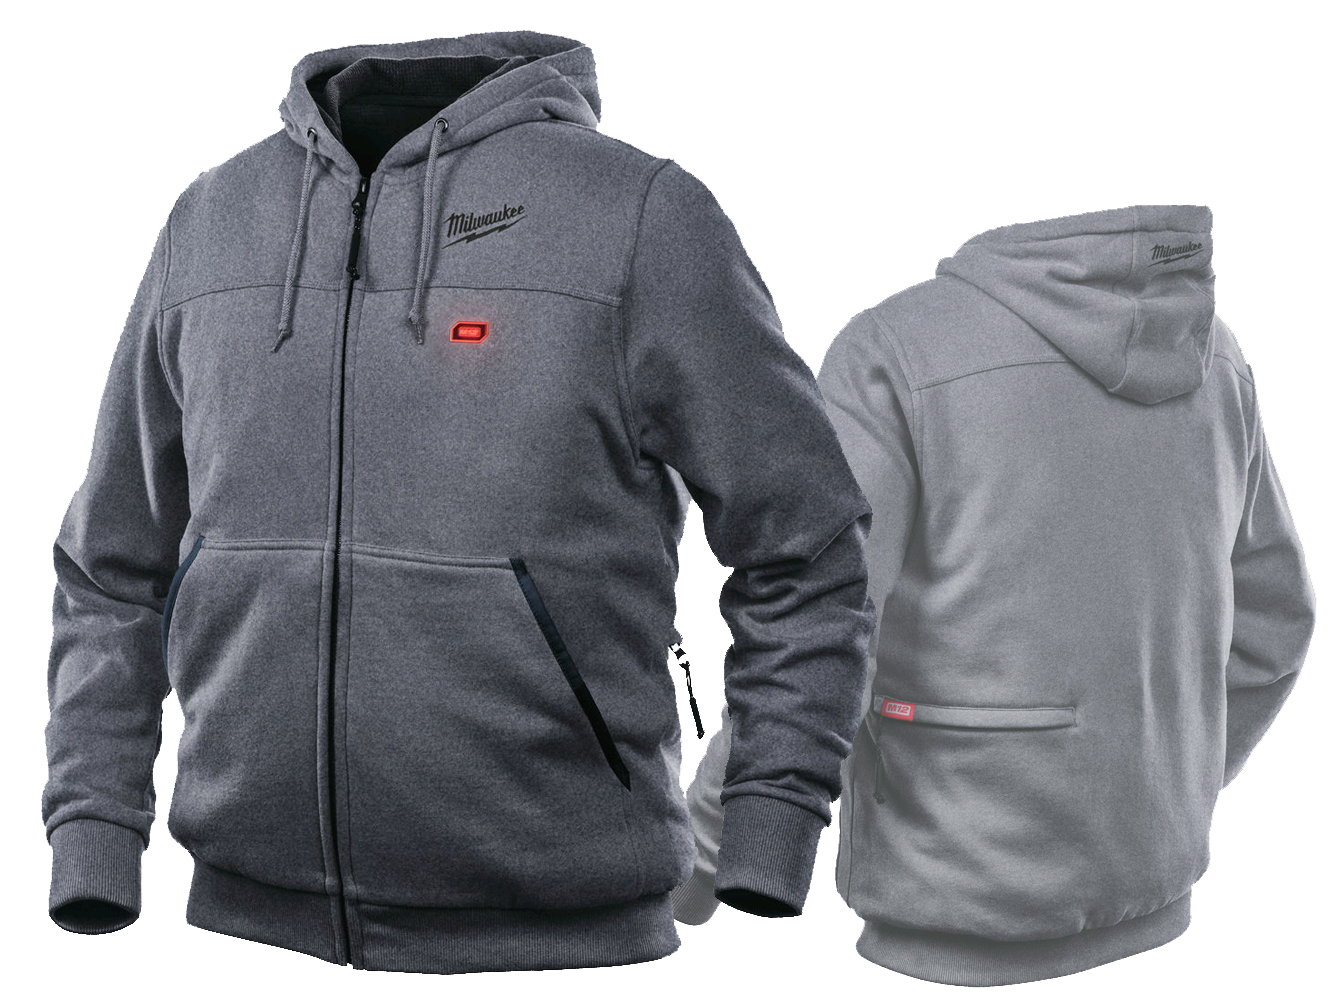 Milwaukee M12HHGREY3 Heated Hoodie Grey - Large